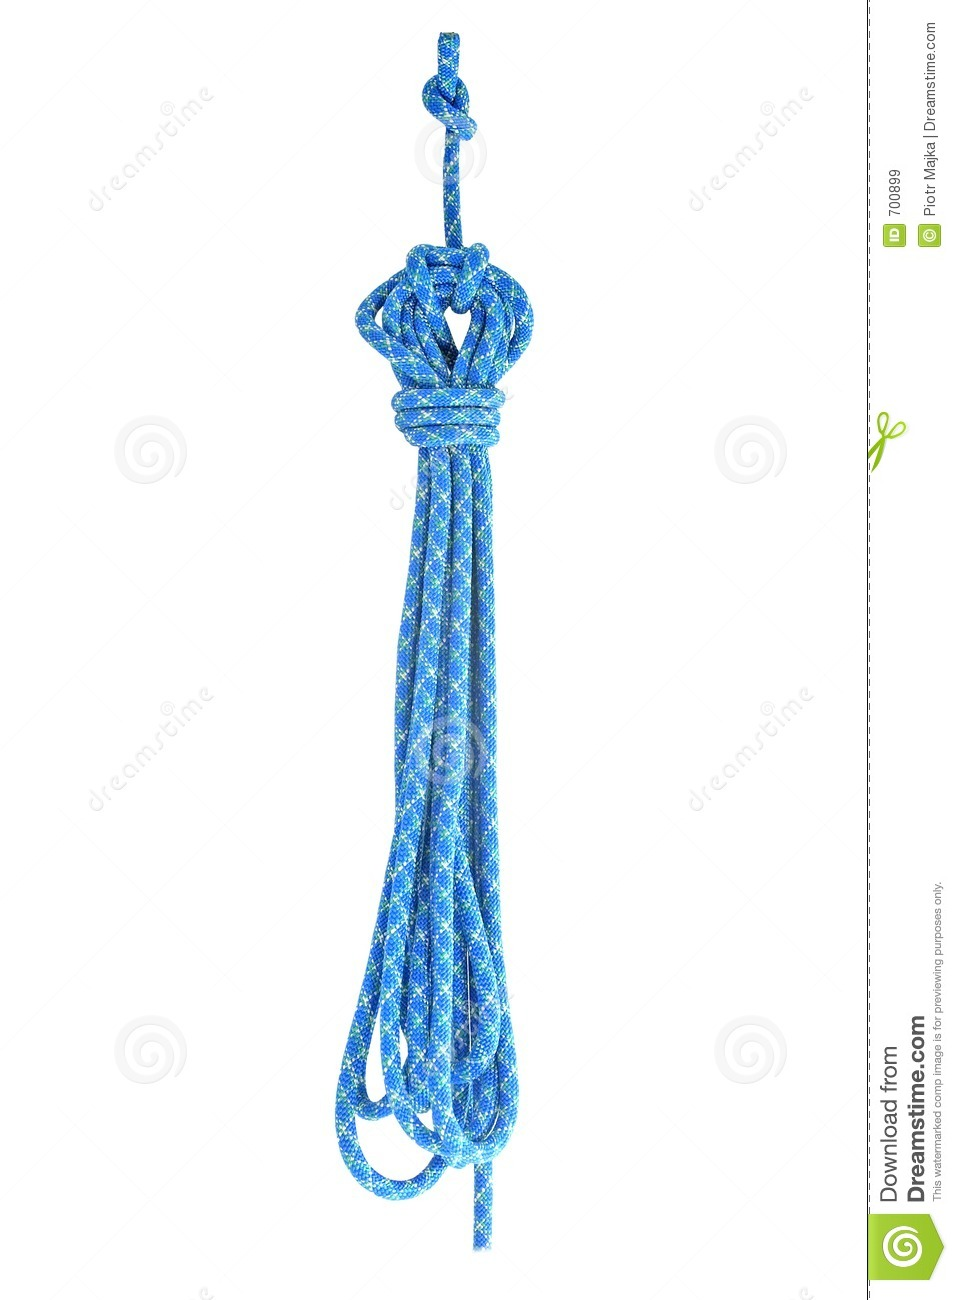 Ready to use blue rope